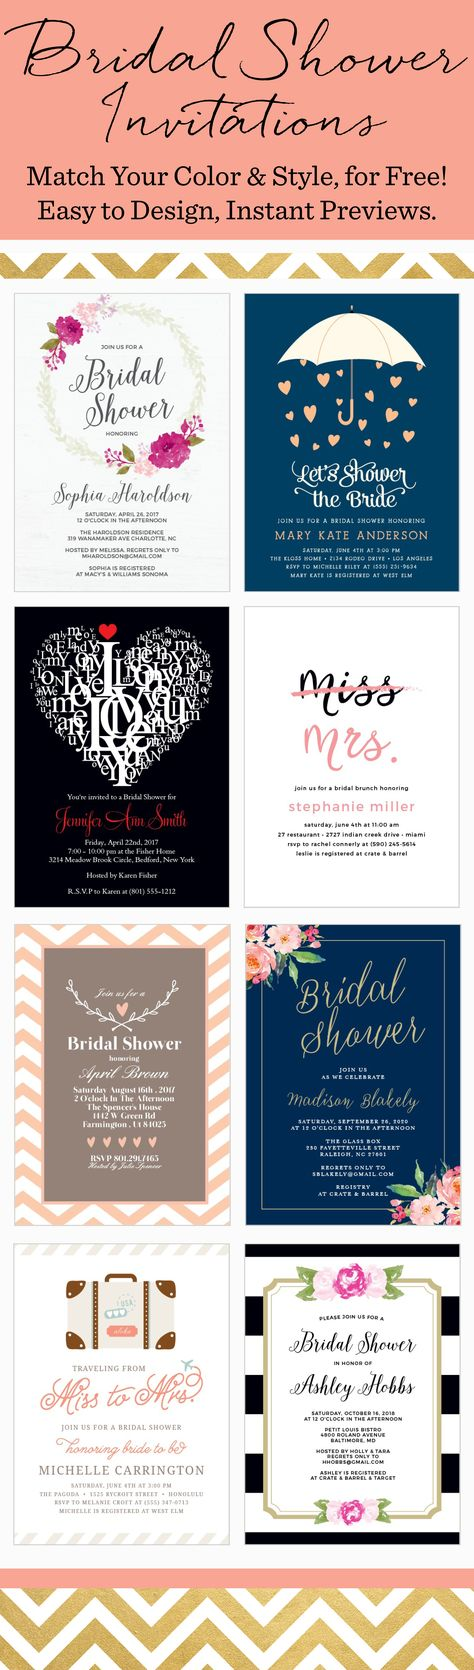 free printable famous couples bridal shower games%0A    FREE Printable Bridal Shower Games   Bridal shower games  Bridal showers  and Gaming